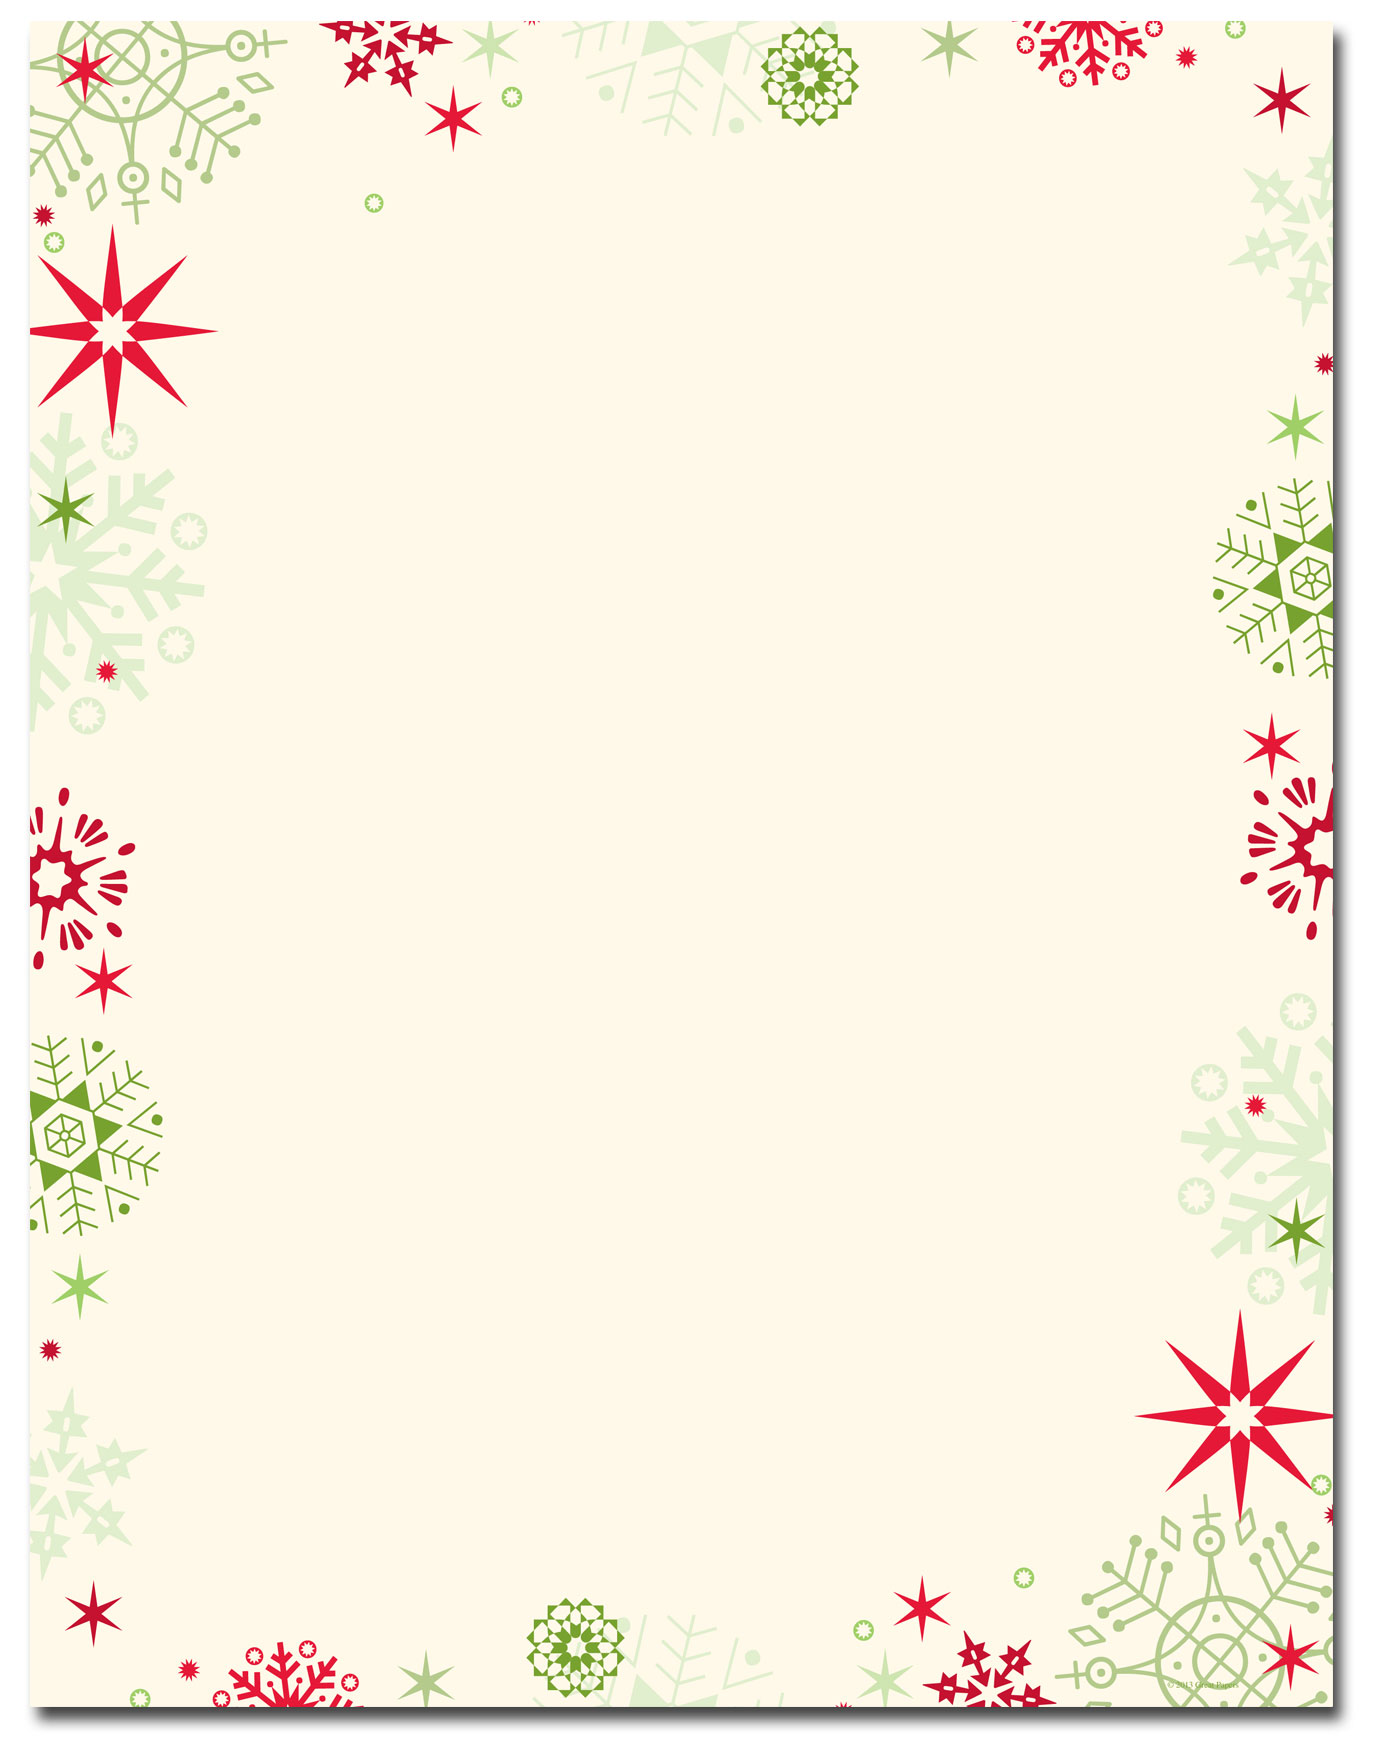 Red & Green Flakes Letterhead - 80 Pack